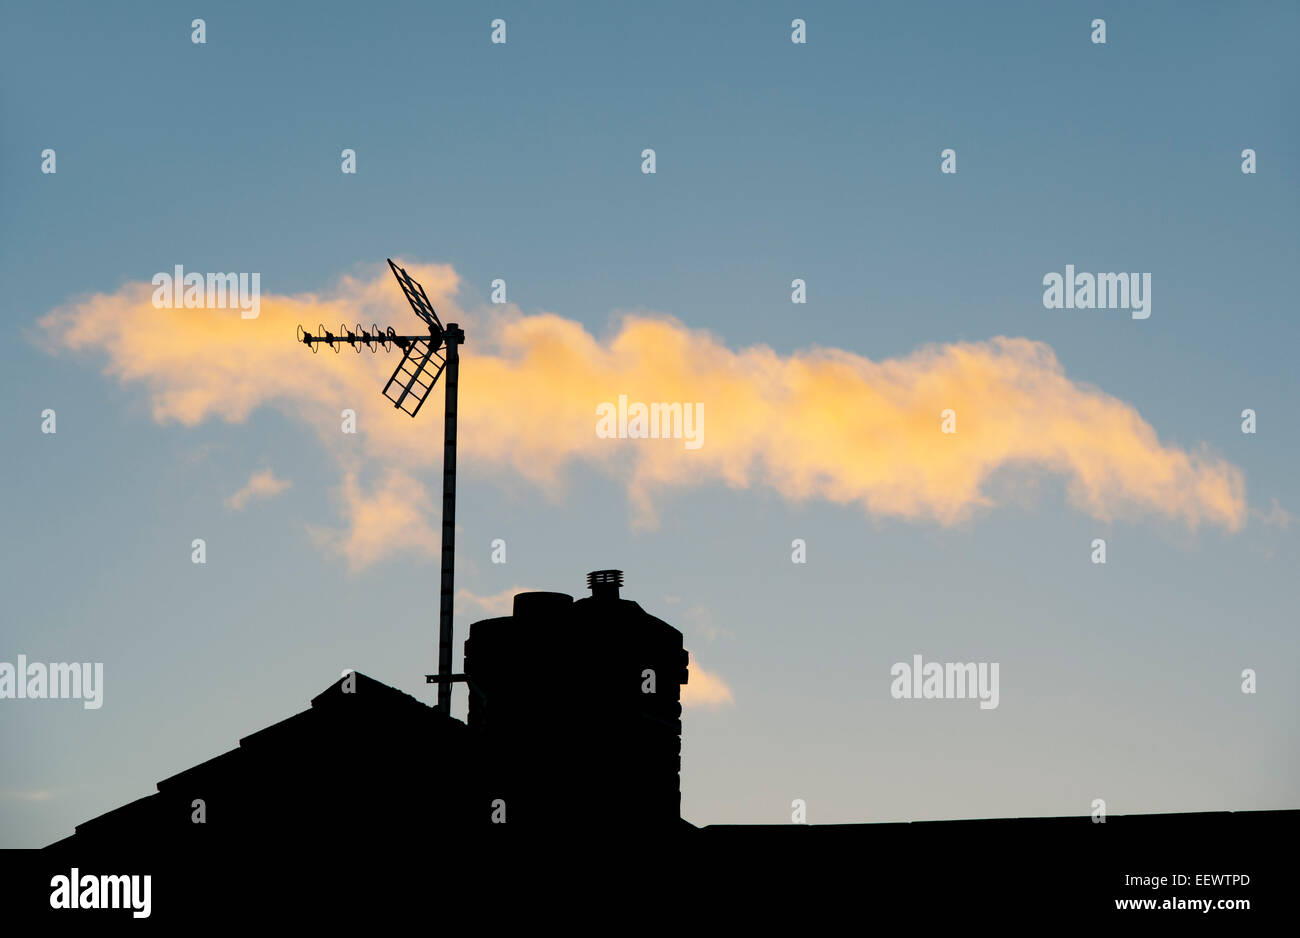 Silhouette TV aerial and house chimney against a sunset cloudy sky - Stock Image